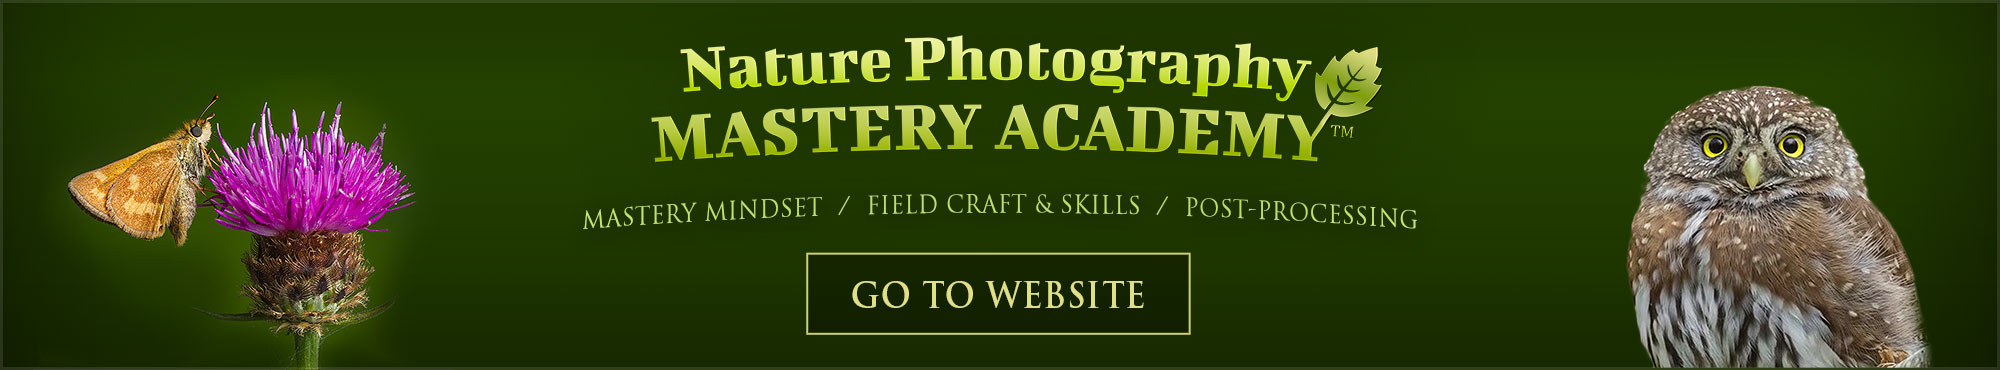 Nature Photography Mastery Academy - Go to Website